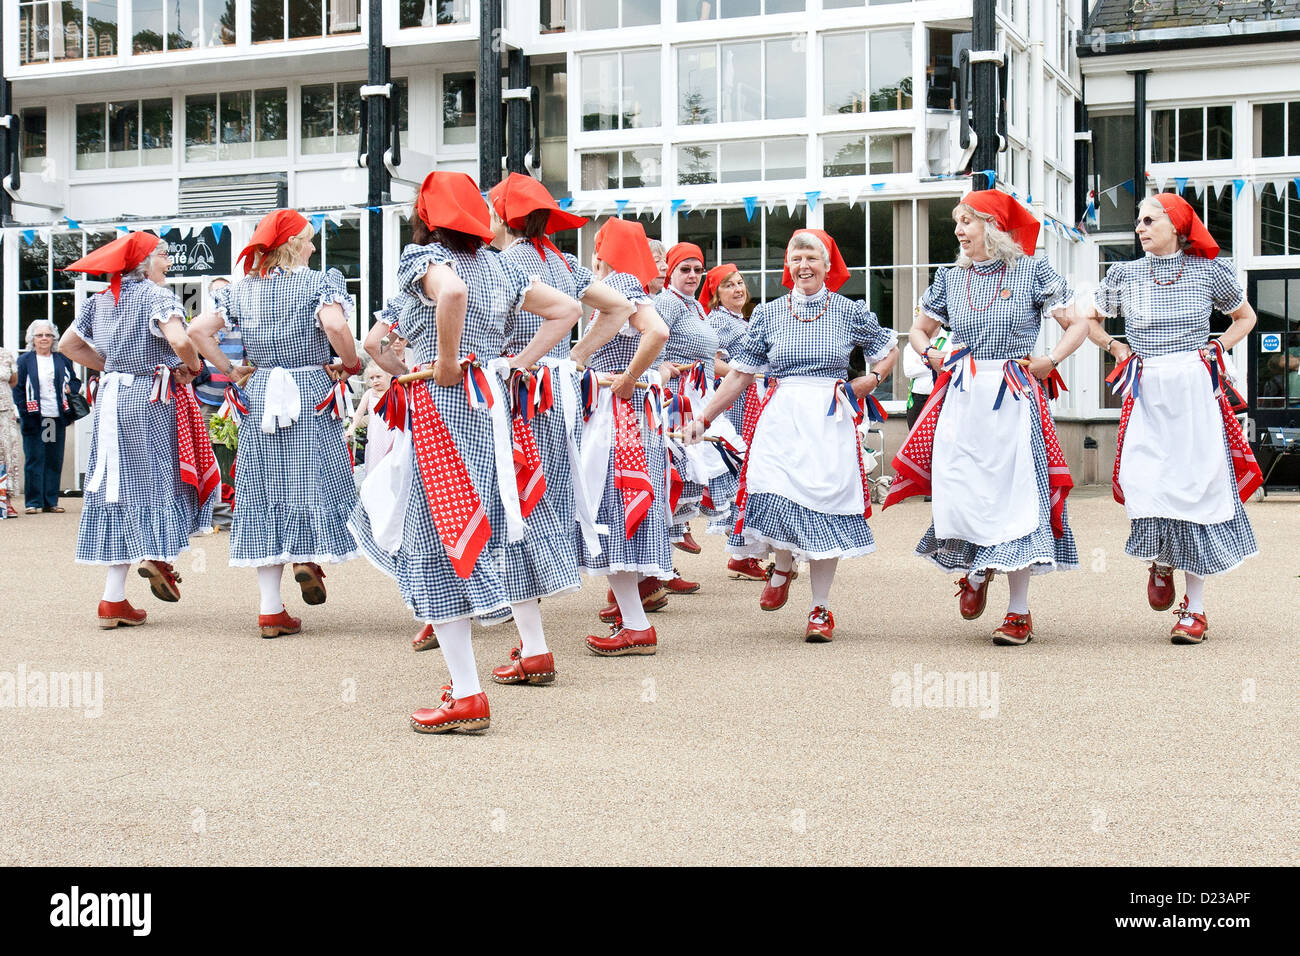 Buxton Day of dance 2012 with female morris dancers - Stock Image